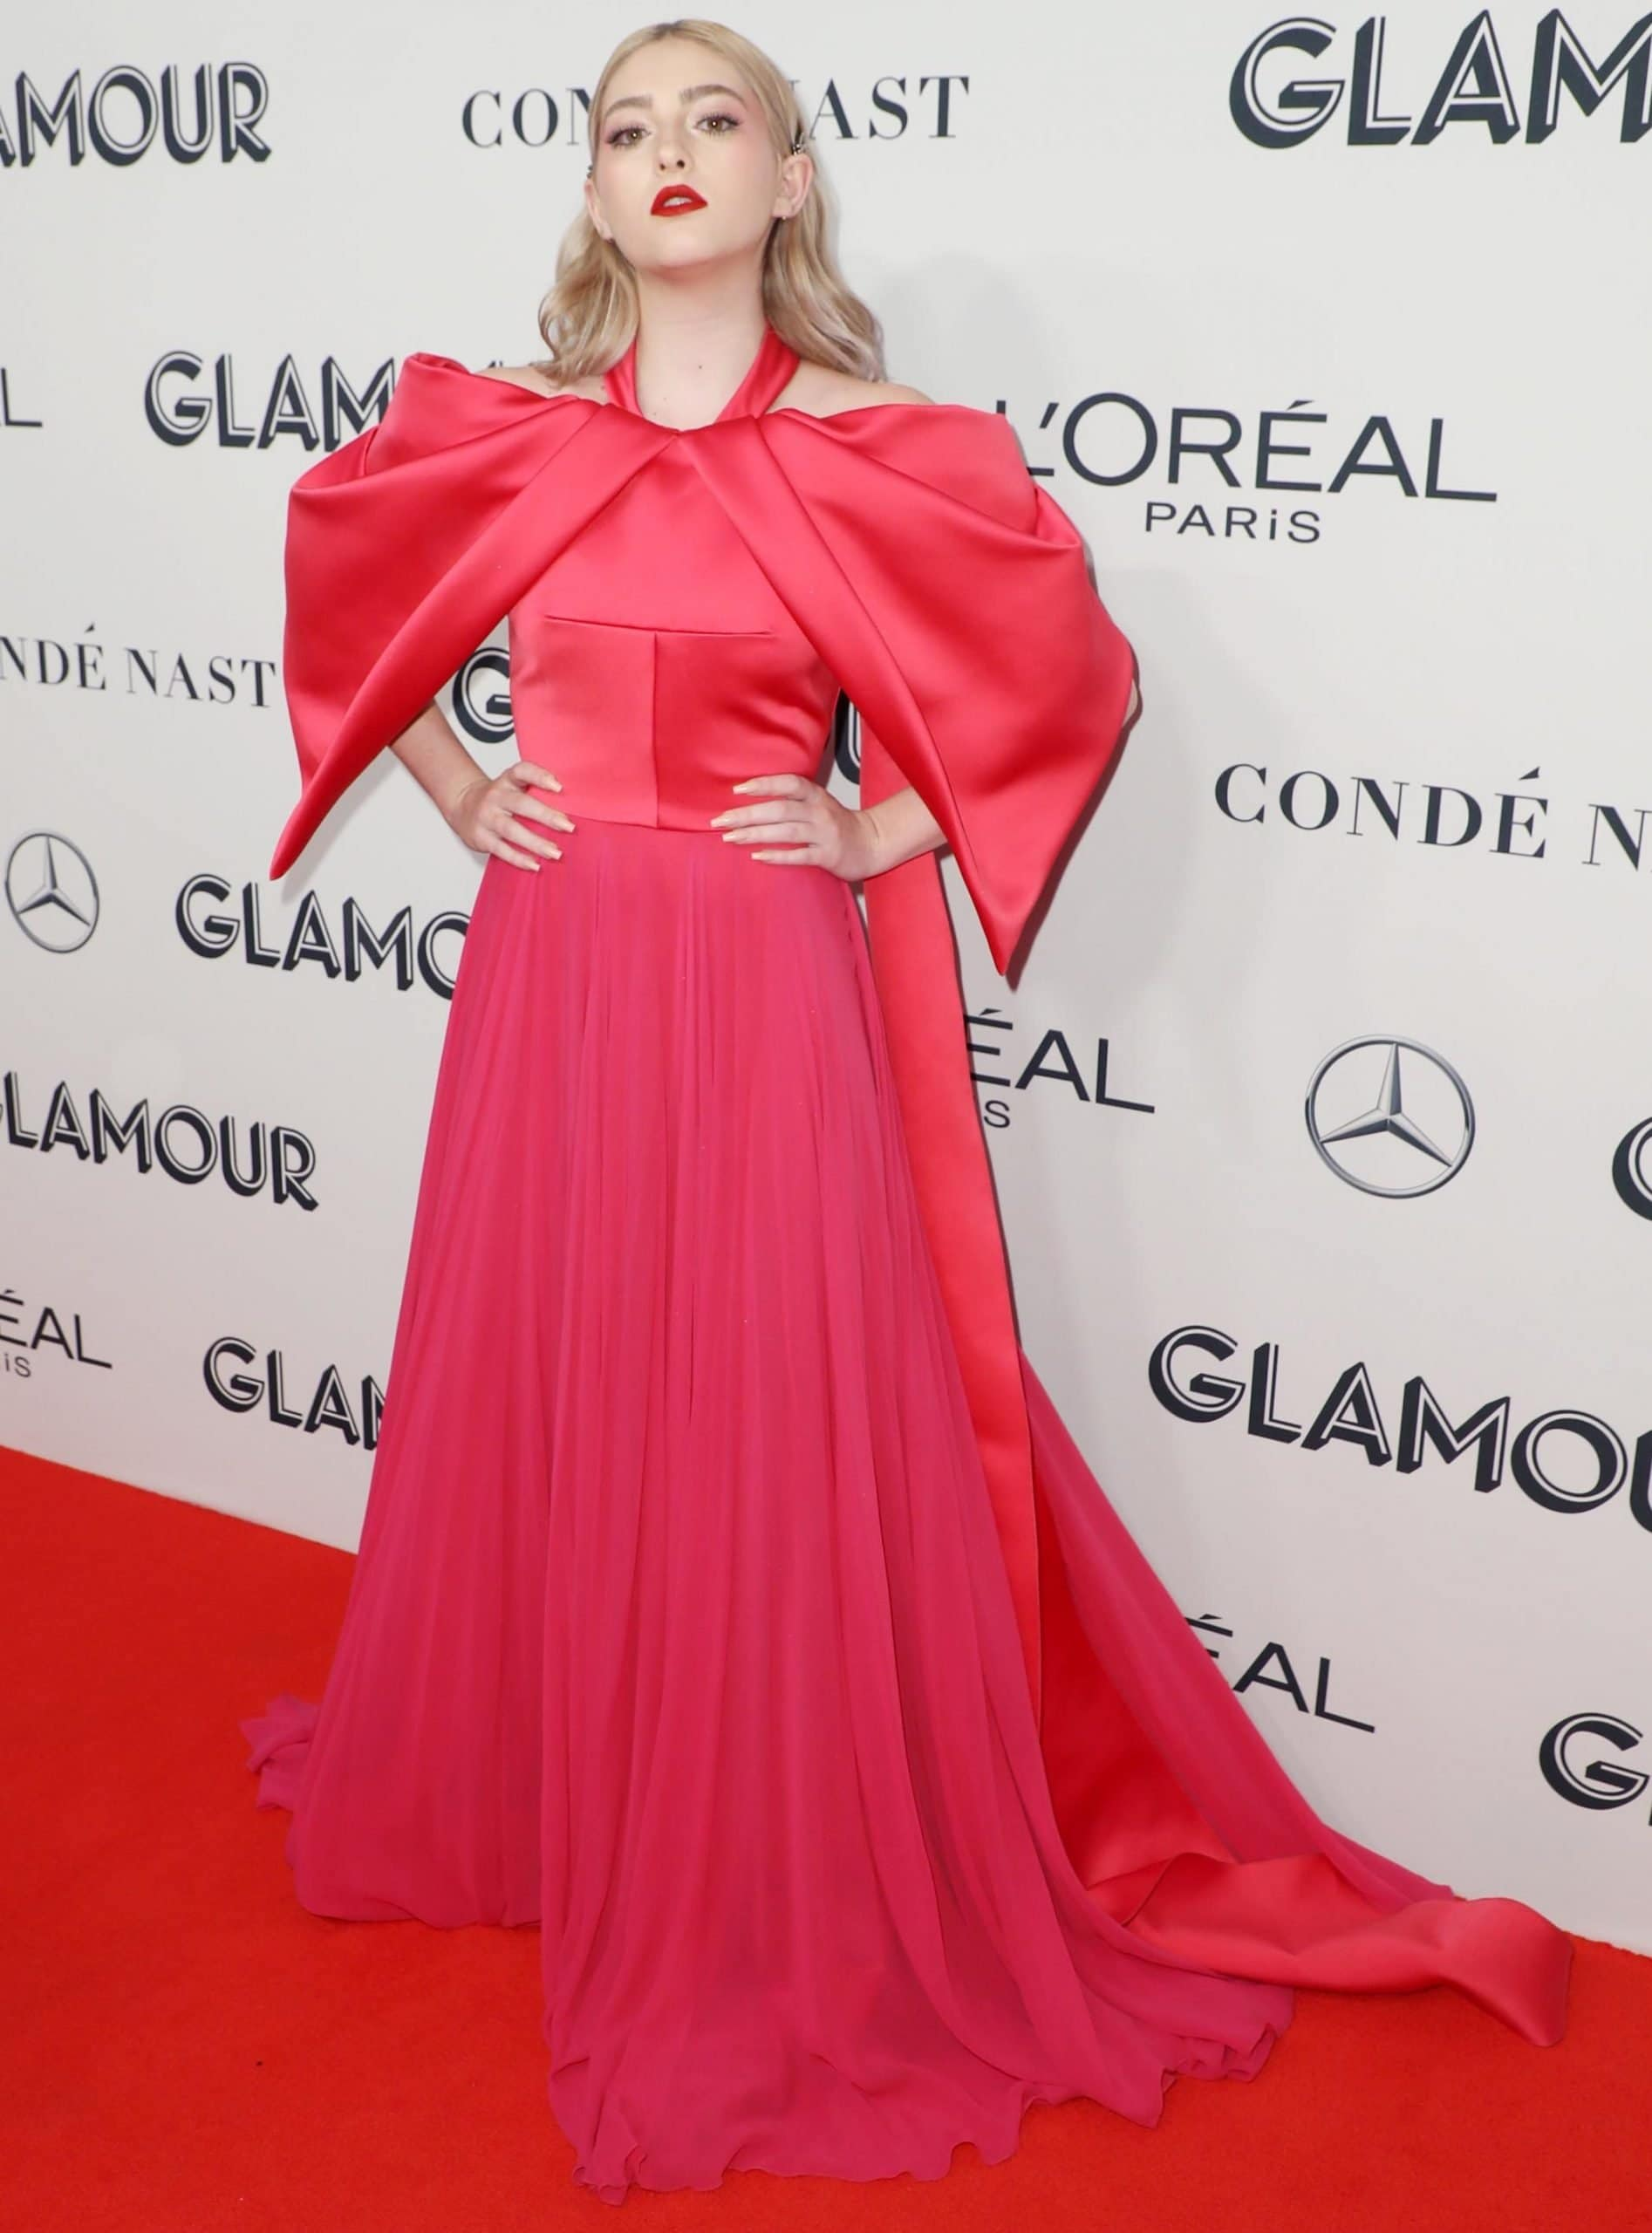 Willow Shields in a beautiful Bibhu Mohapatra dress at the 2019 Glamour Women Of The Year Awards